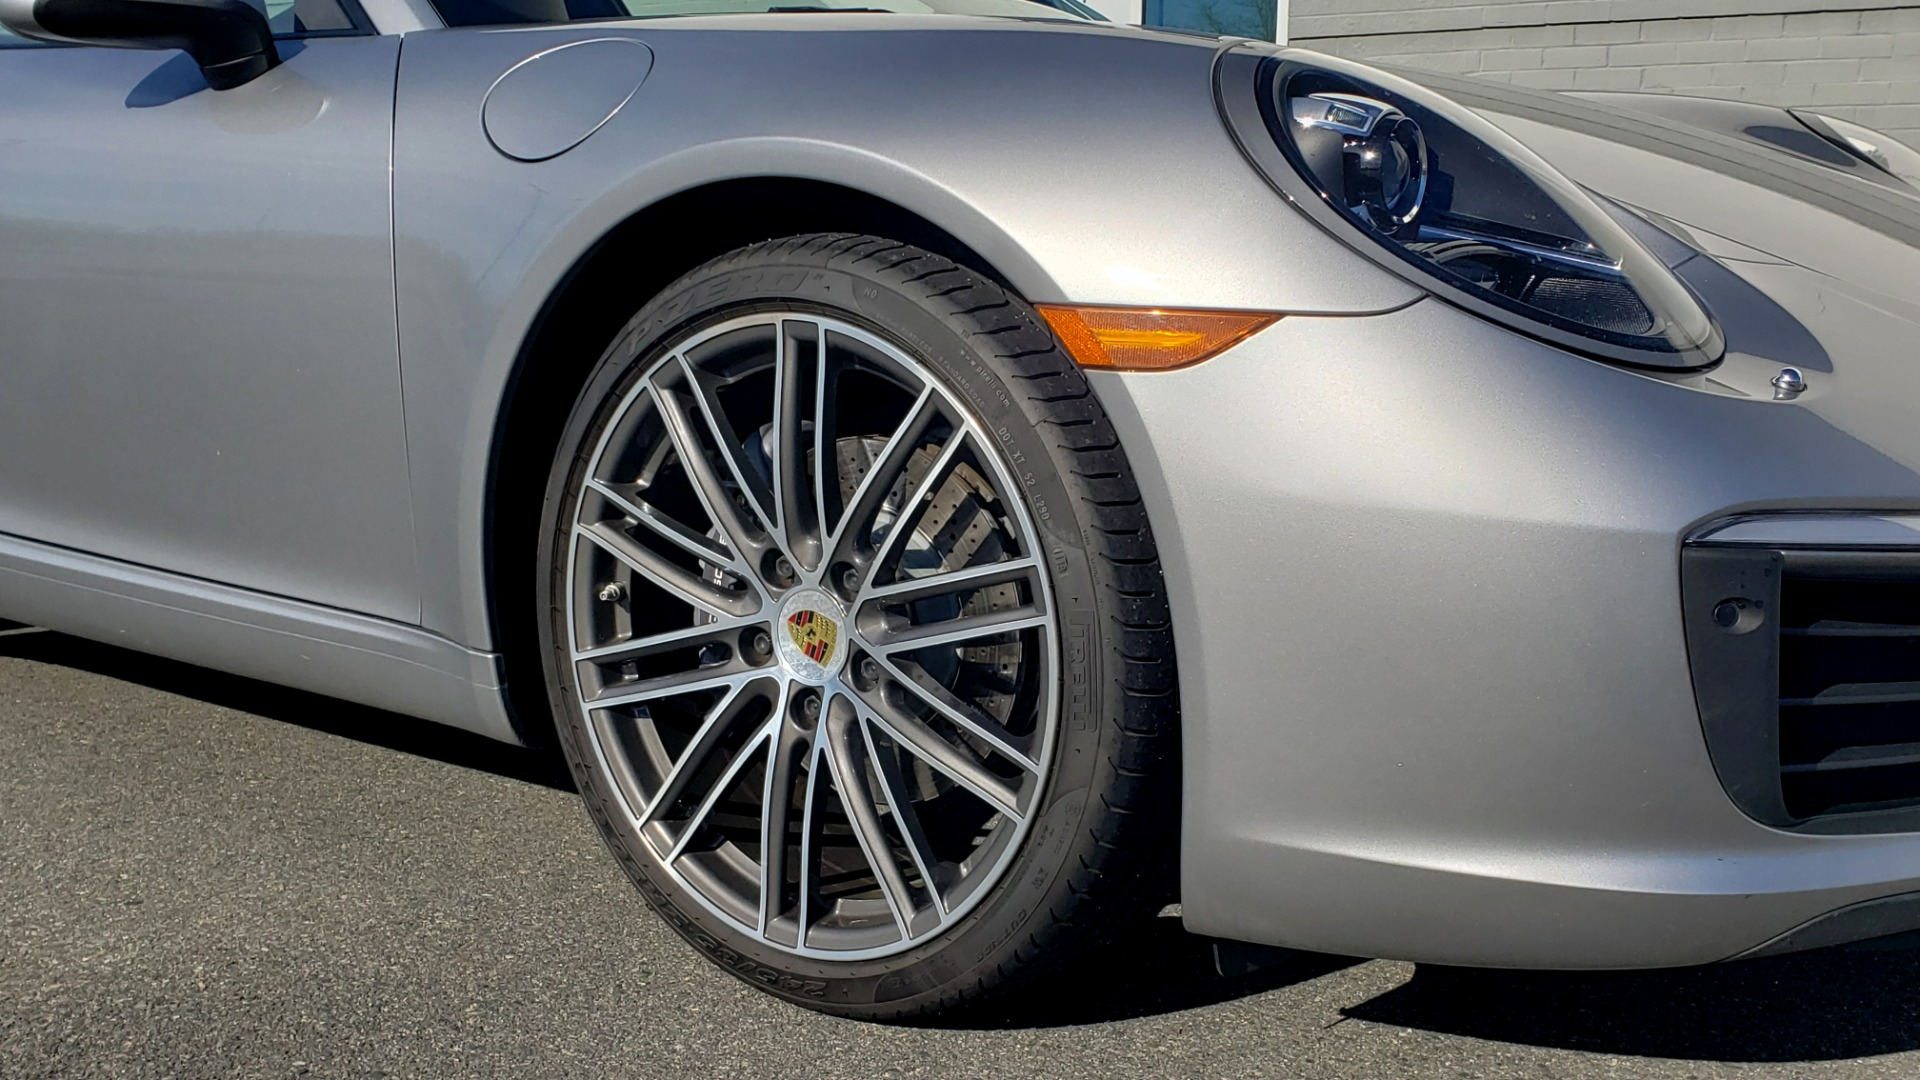 Used 2017 Porsche 911 CARRERA COUPE / 3.0L / 7-SPD MAN / NAV / PDLS / SUNROOF / REARVIEW for sale Sold at Formula Imports in Charlotte NC 28227 76